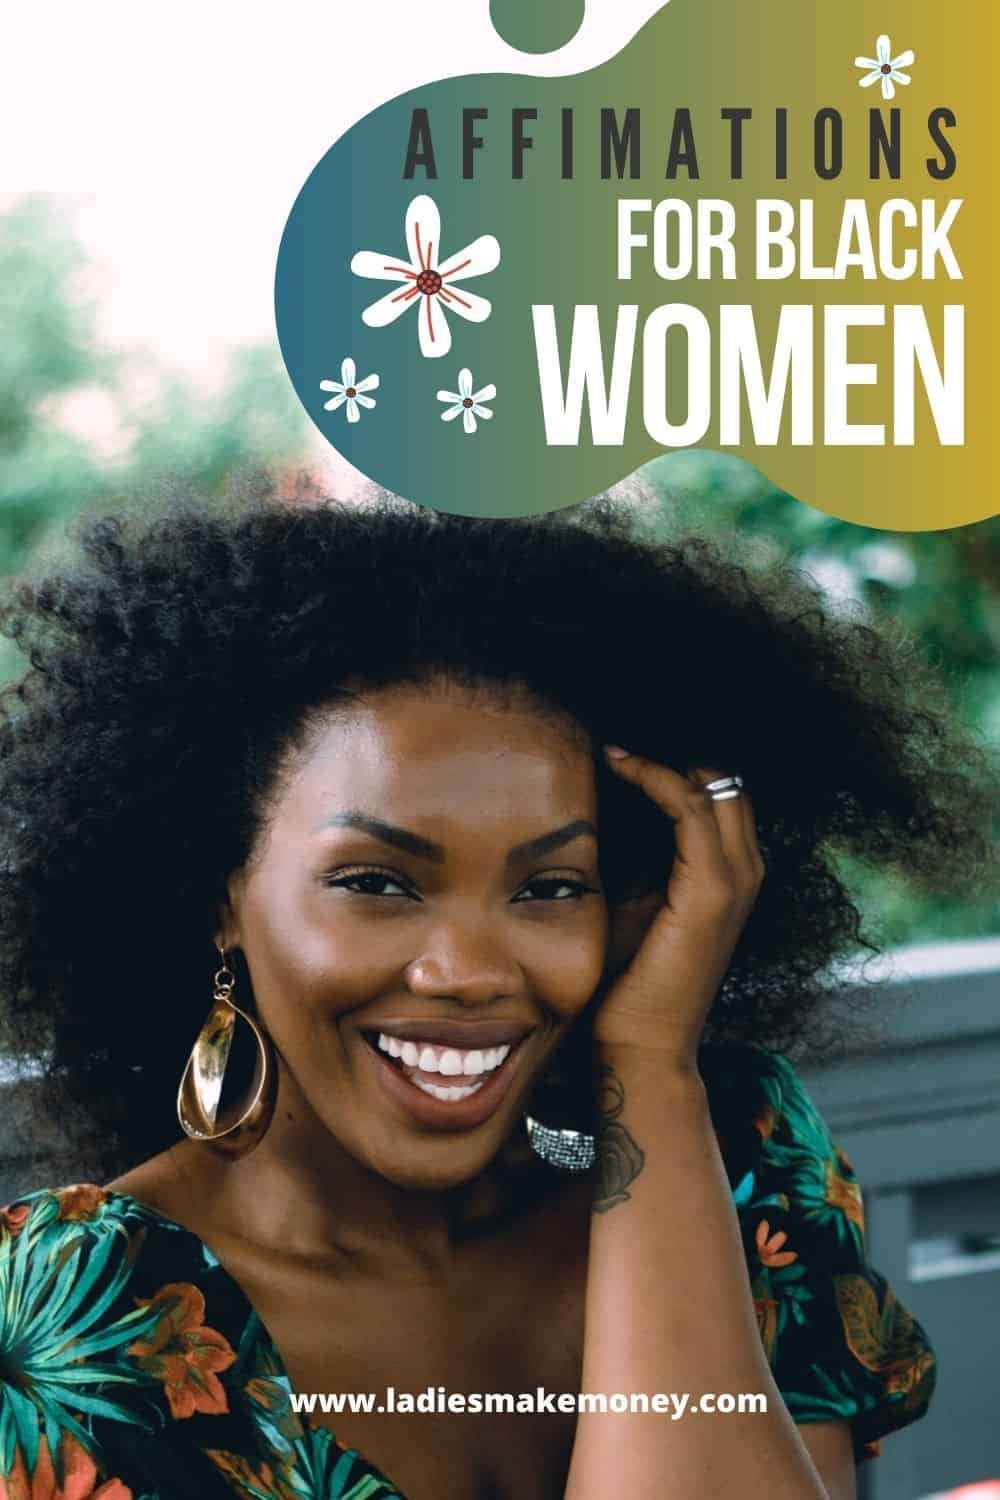 Positive Affirmations for Black Women, here are our best. If you are looking for daily affirmations for black women, look no further than this post. We have a great list of motivational affirmations that black women can use #possitiveaffirmations #blackwomen